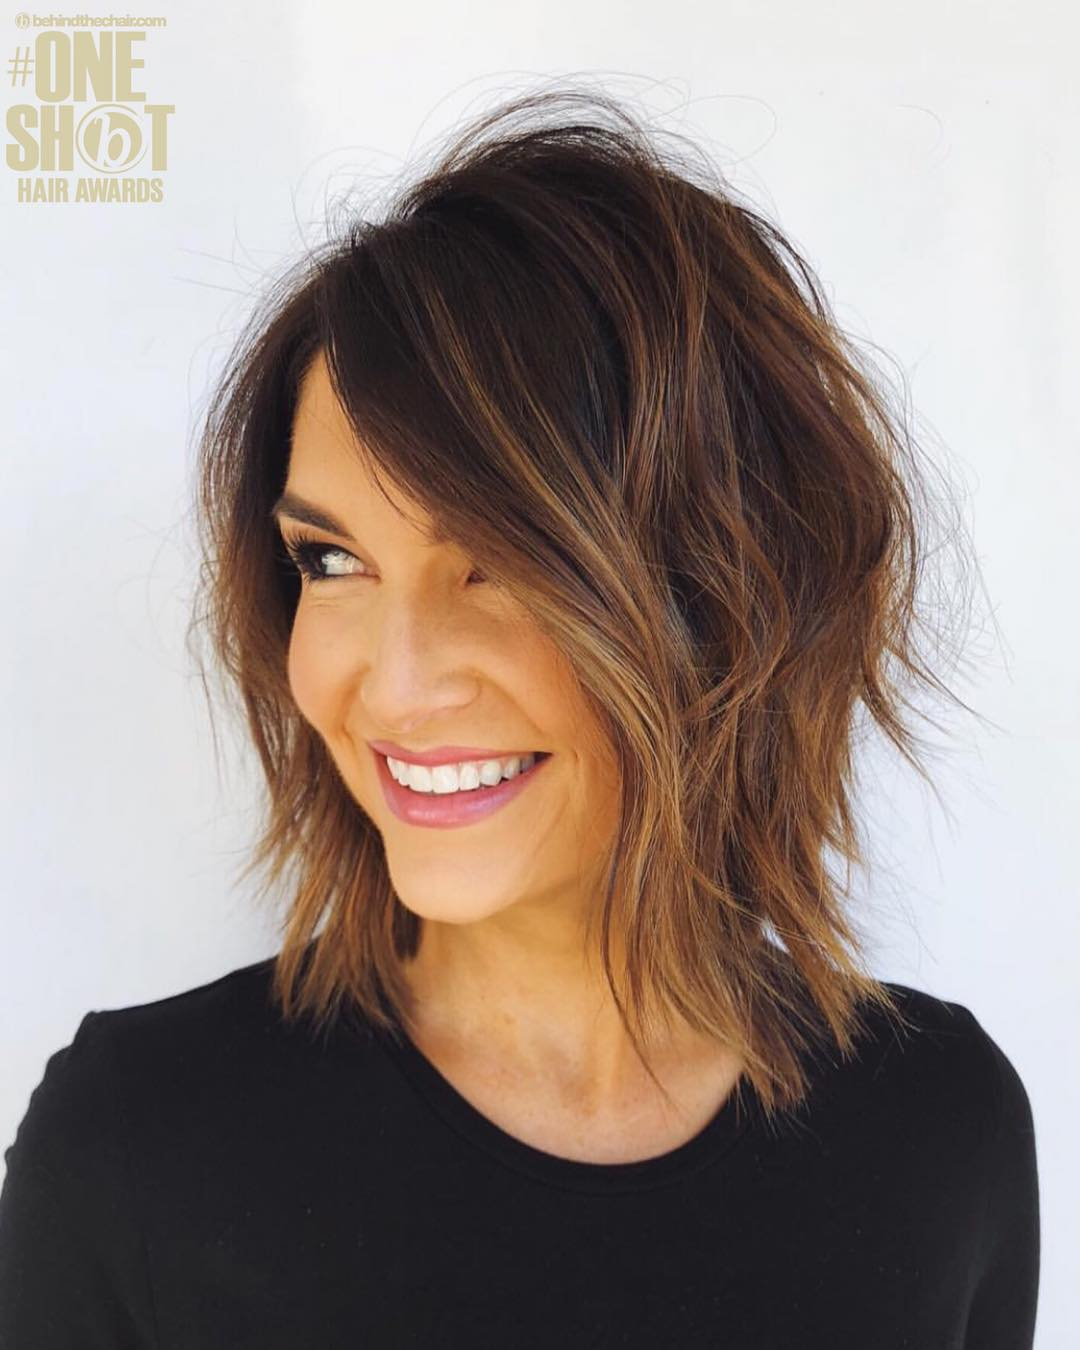 medium layered bob hairstyle;bob hairstyles for fine hair;short hairstyle women;2019 trending hairstyles